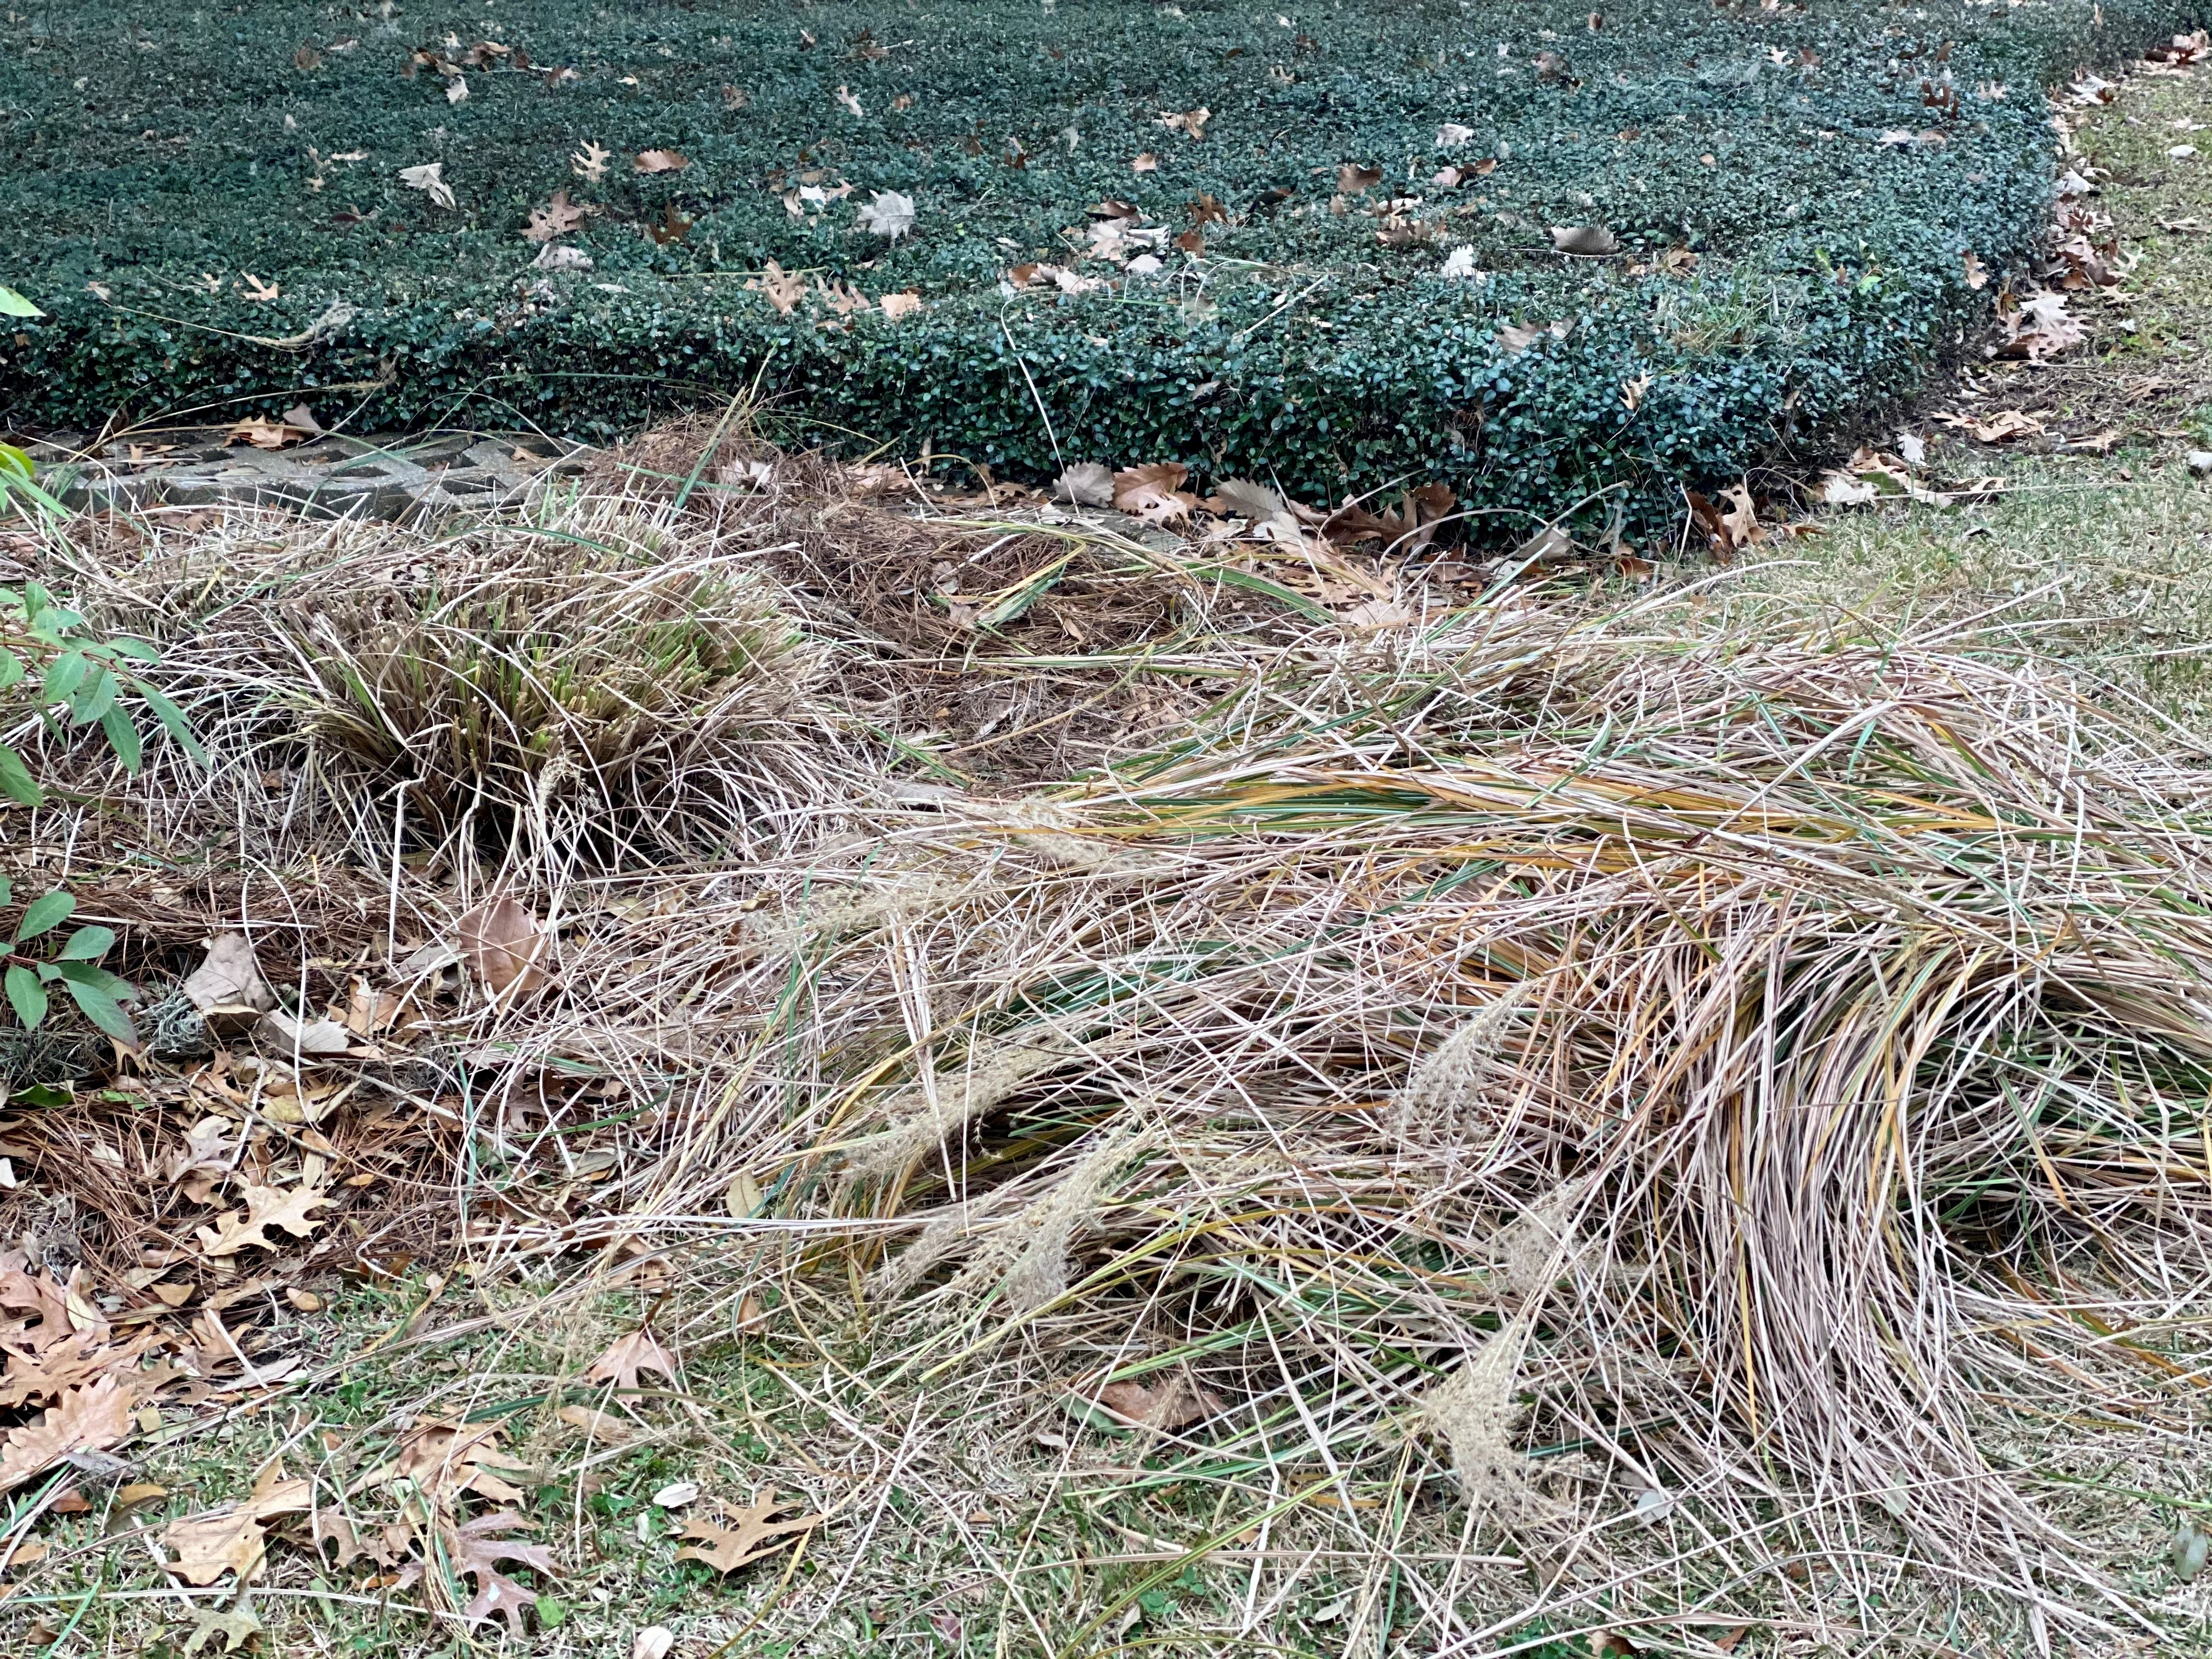 Dormant ornamental grasses can be trimmed in wintertime but make great food and nesting areas for birds.